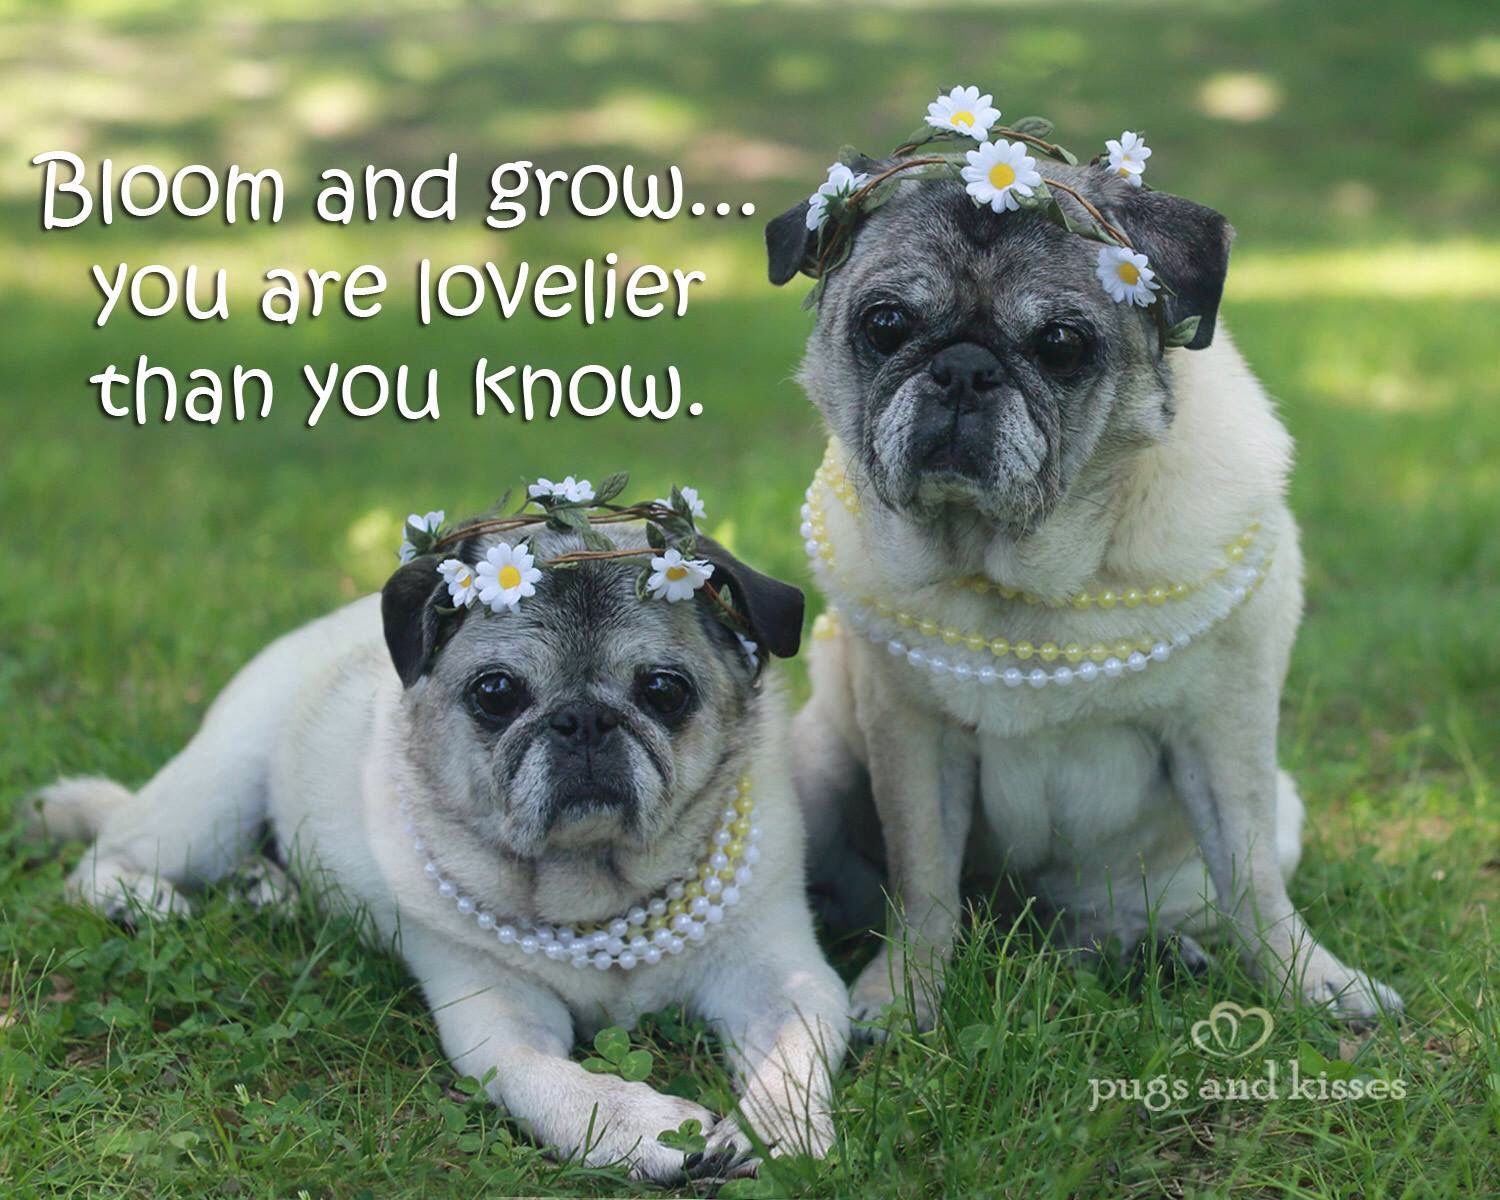 Pugs with flower crowns